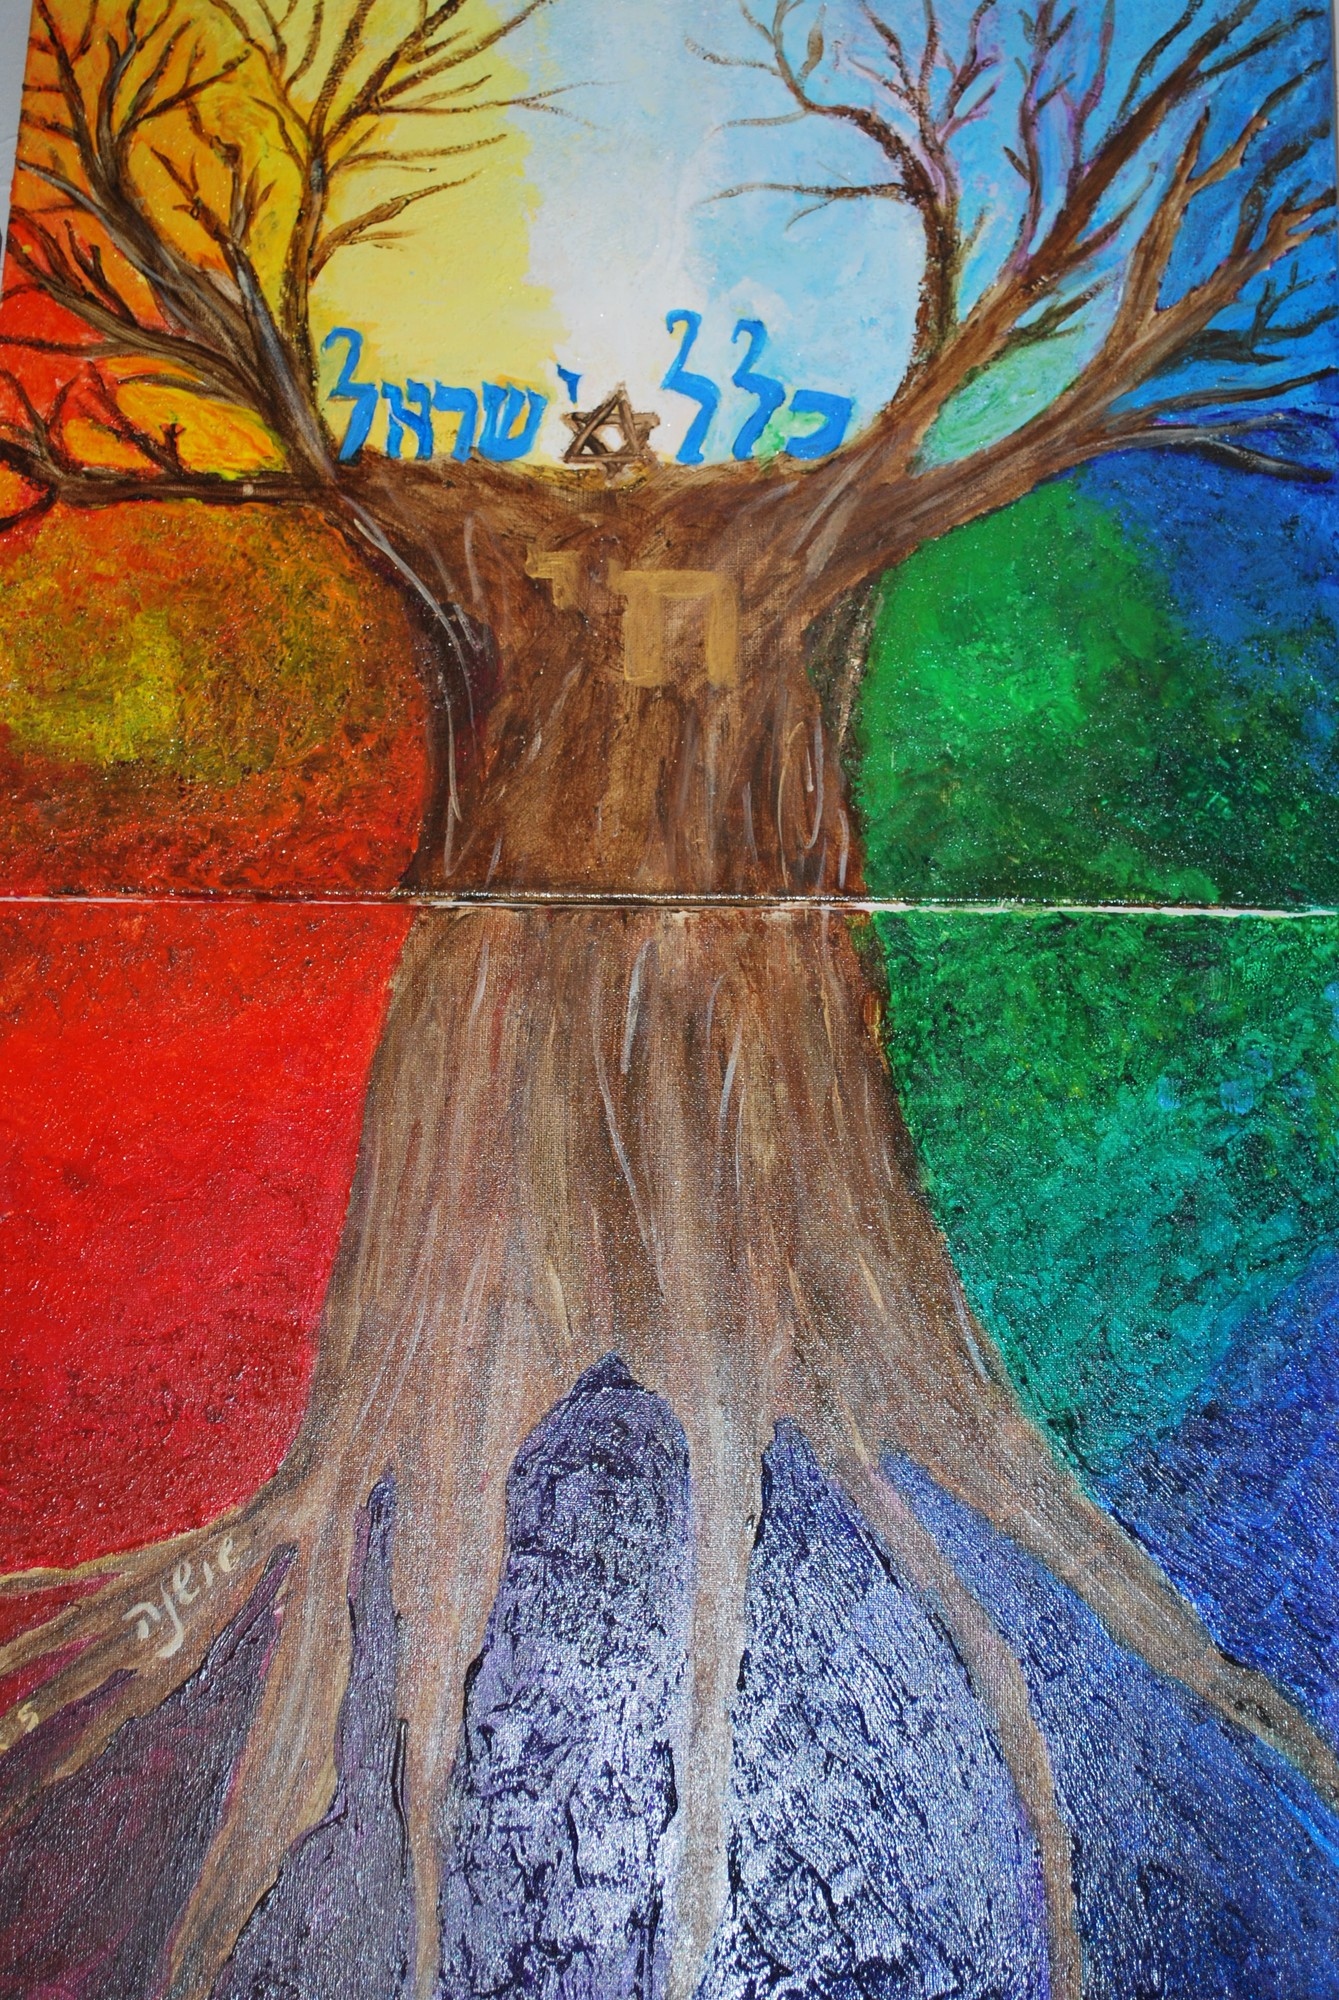 Shanah Findling's painting at the Chabad of Hewlett depicting the deep roots of Judaism.